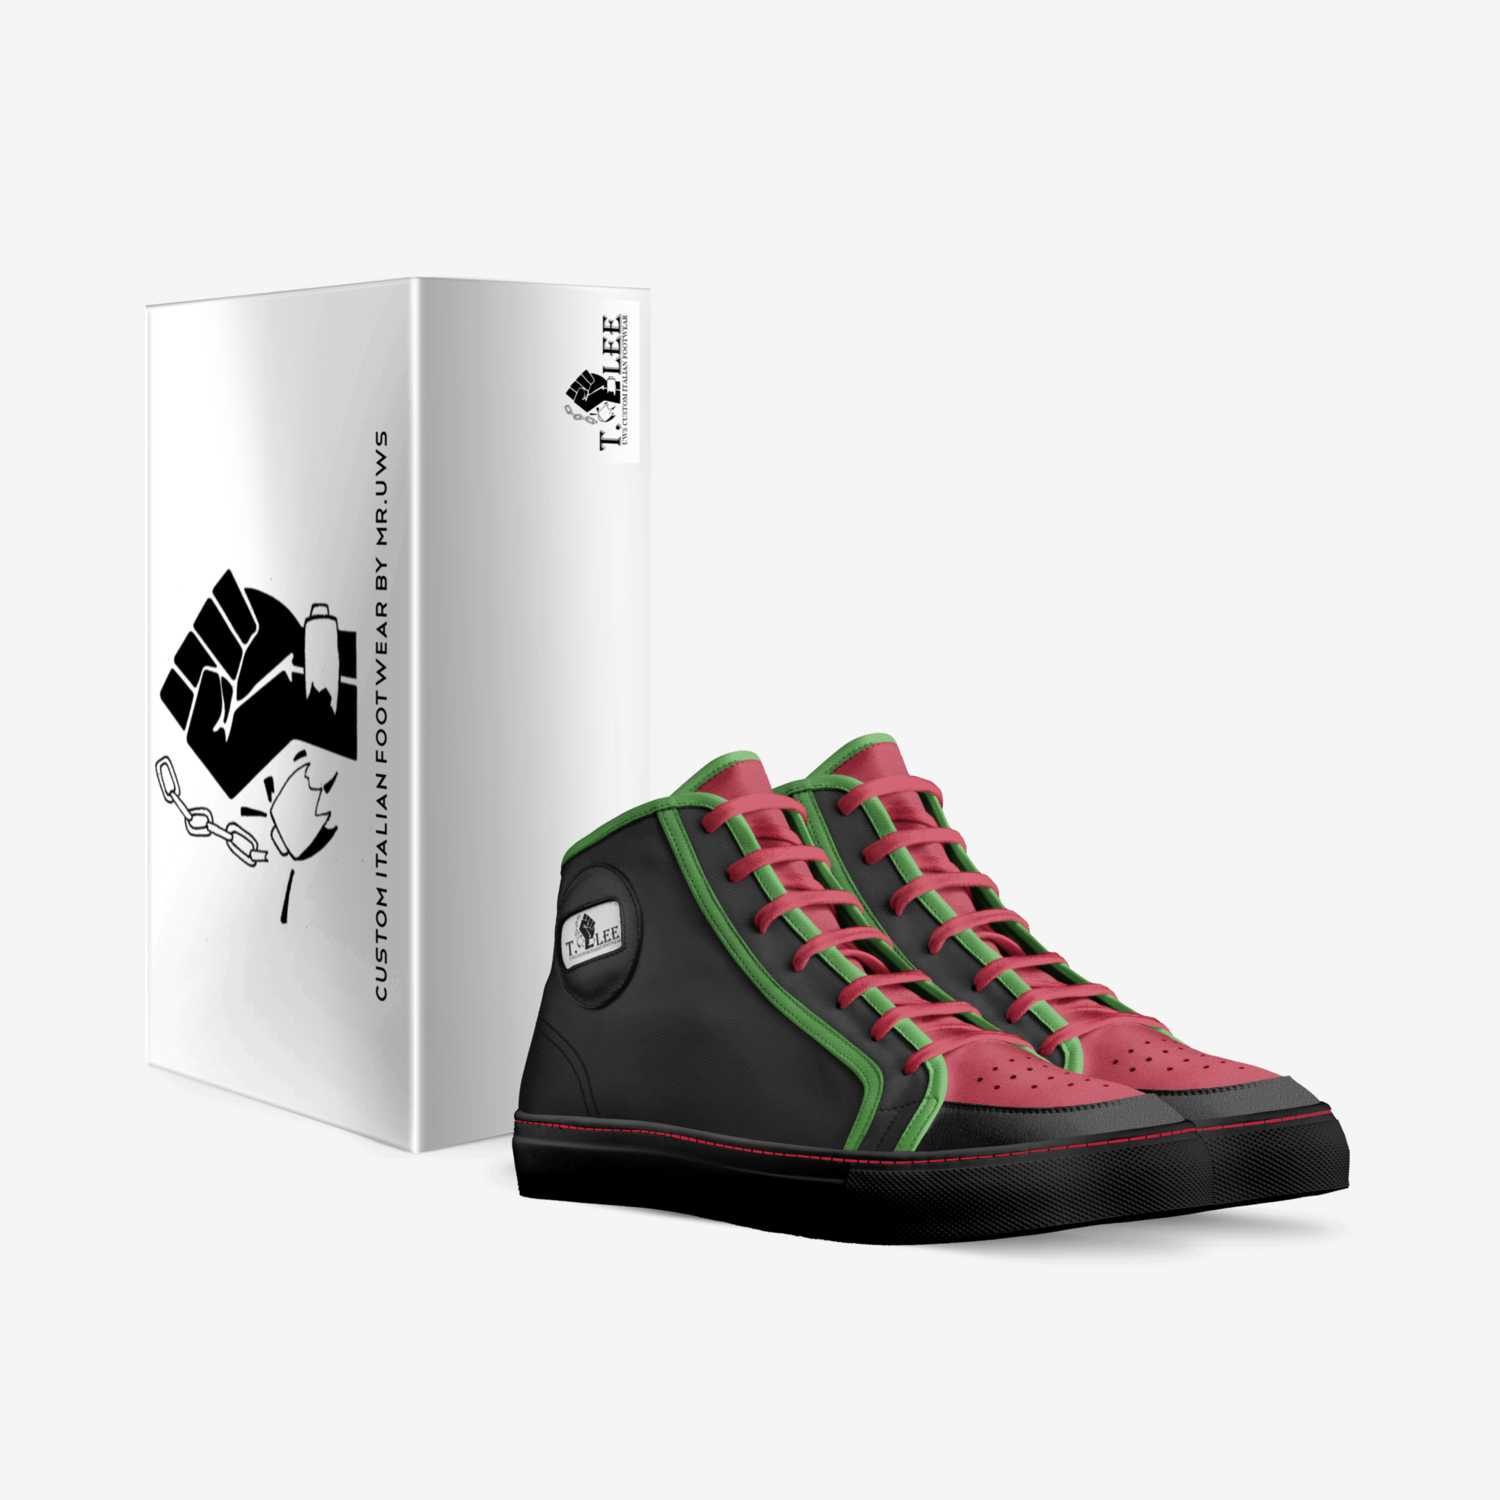 T Lee's custom made in Italy shoes by Urbanwallstreet Earl   Box view